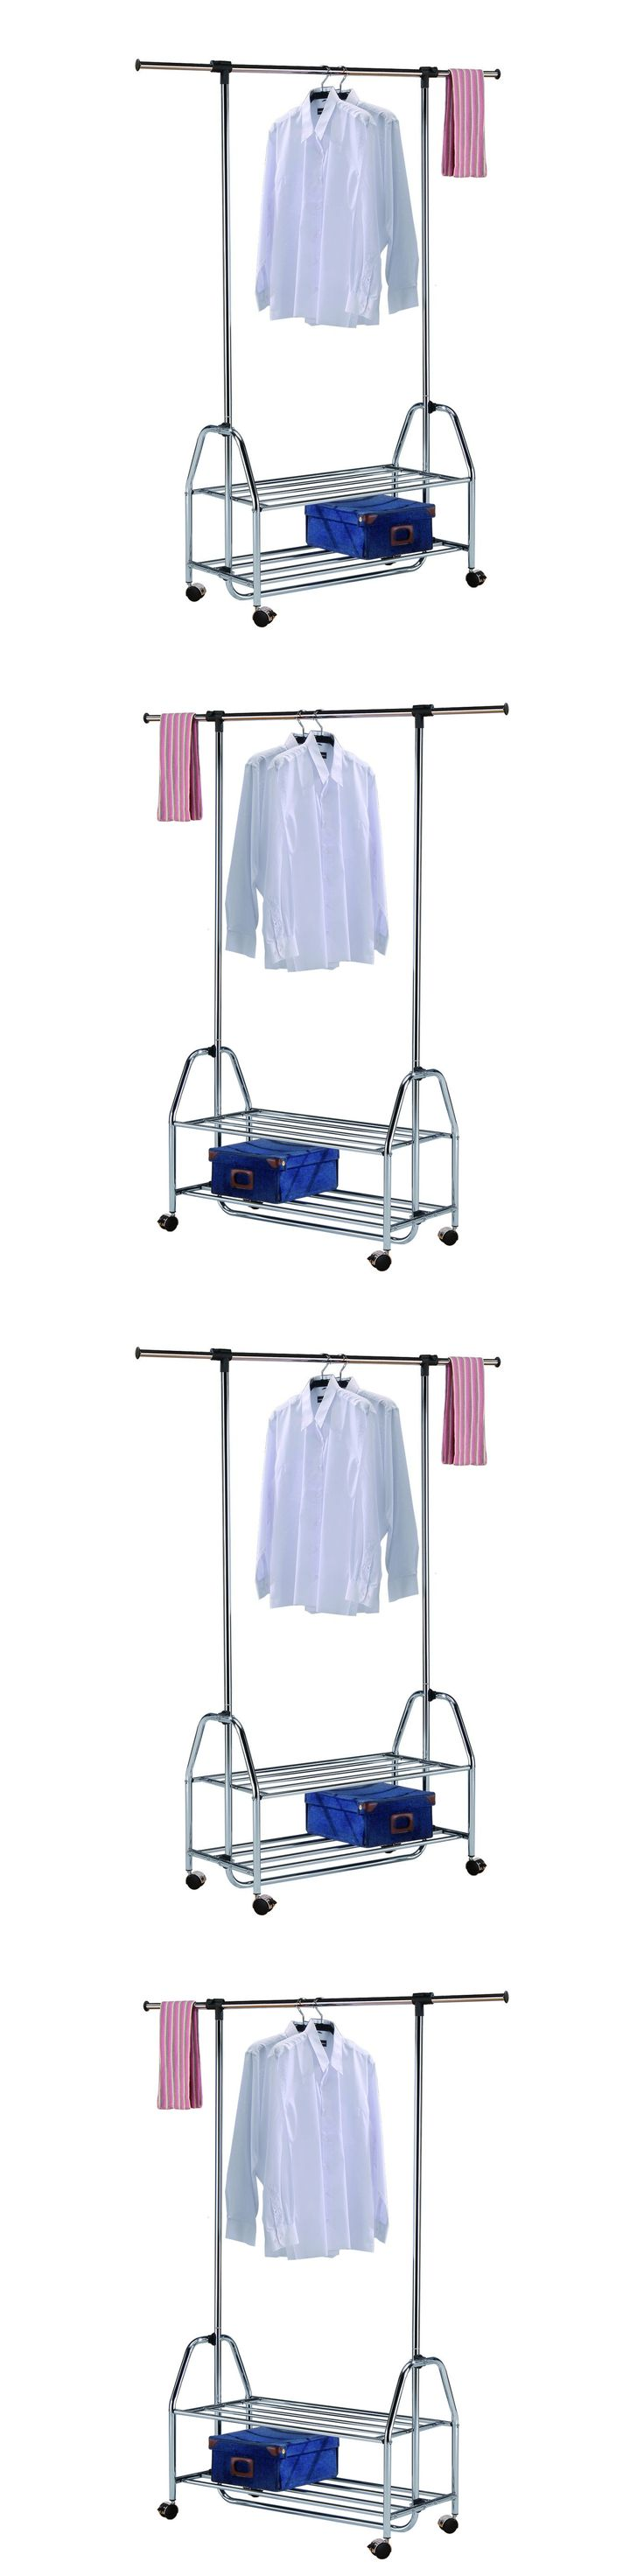 Garment Racks 166325: Portable Clothes Rack Rolling Garment Hanger Heavy Duty Rail Bar Adjustable Shoe -> BUY IT NOW ONLY: $105.37 on eBay!